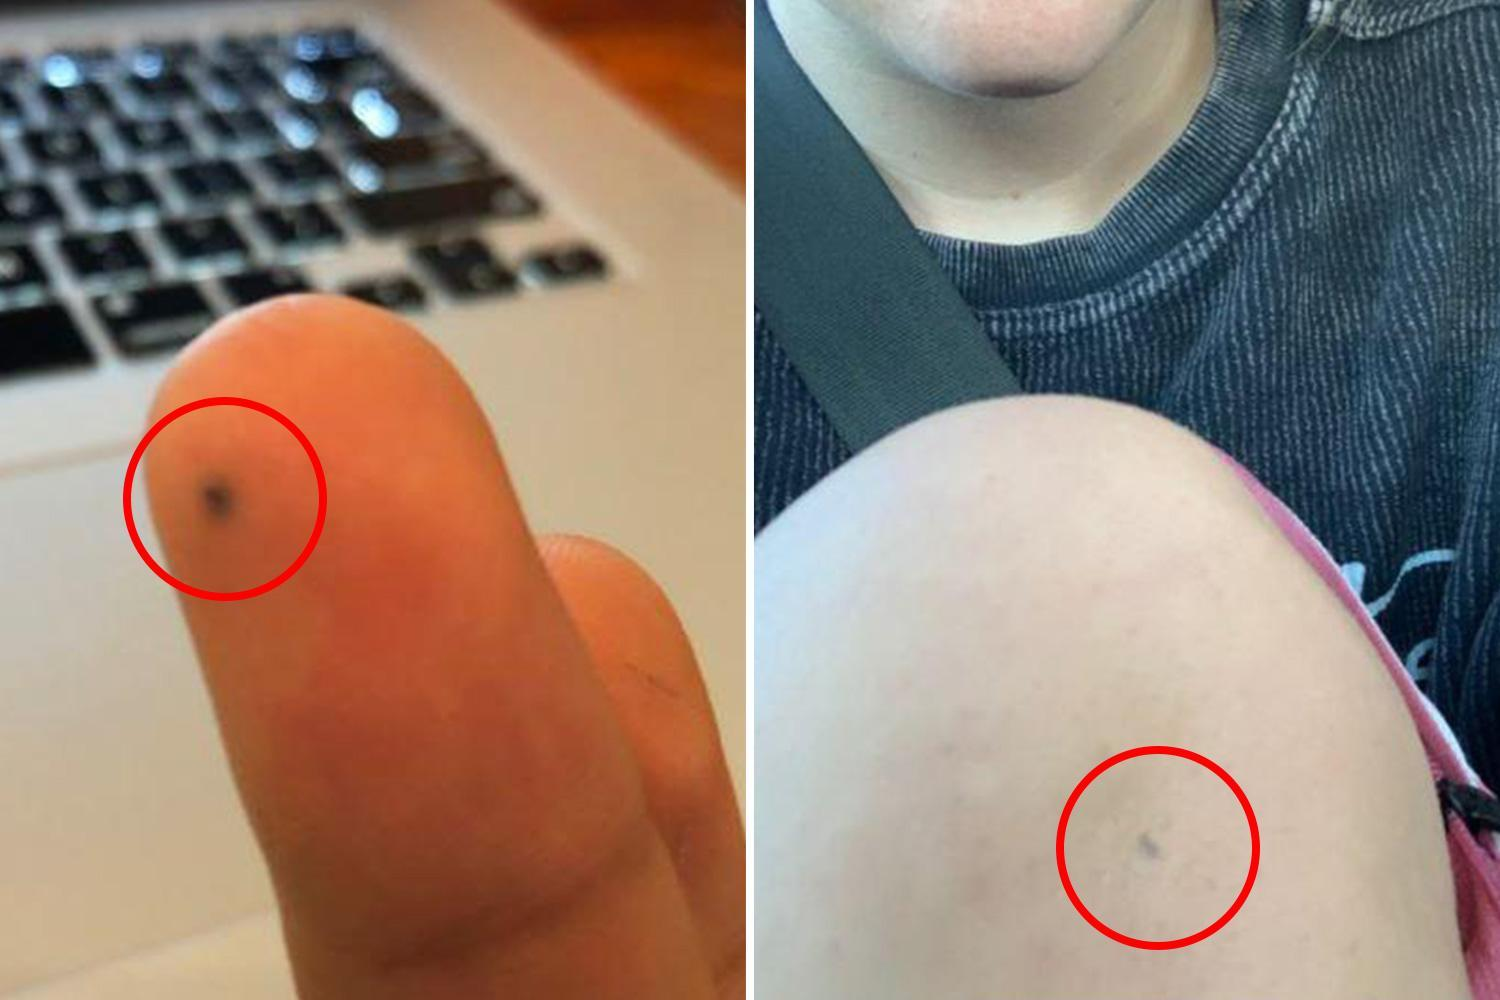 People share photos of lead stuck under their skin years after being stabbed with a pencil at school